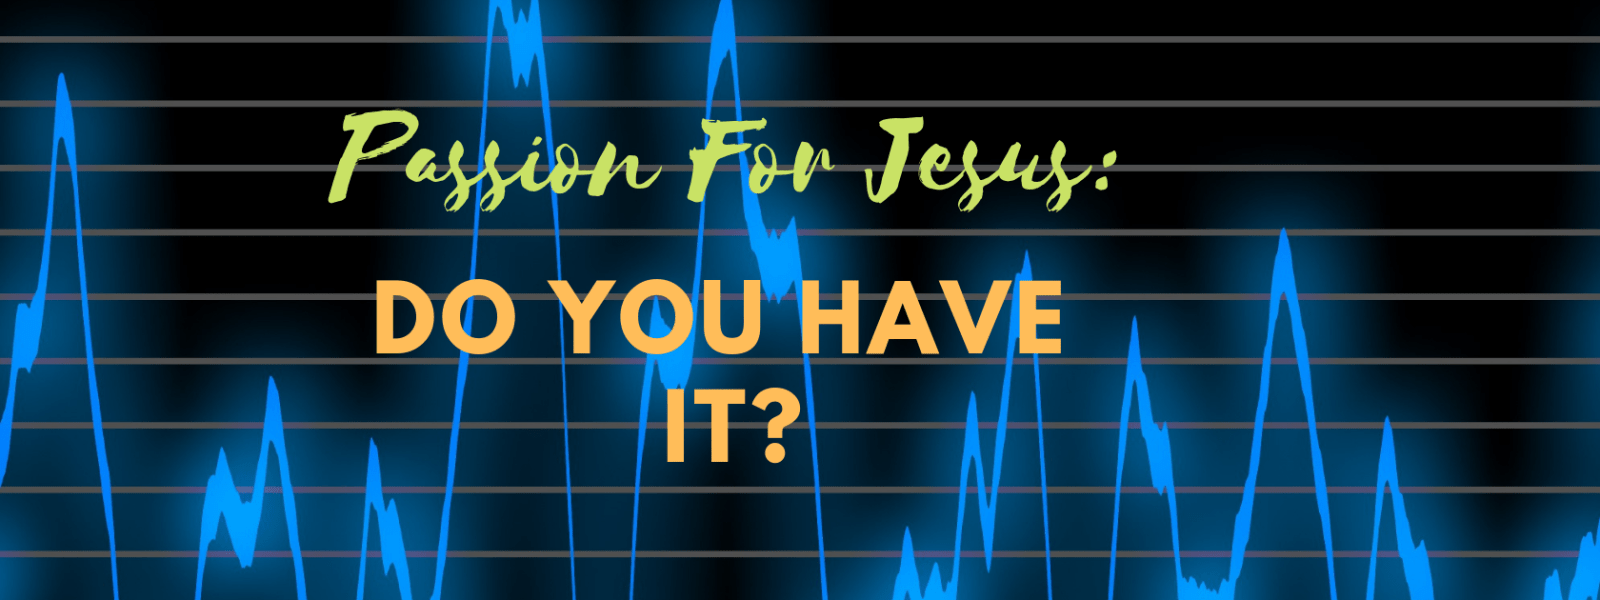 Passion For Jesus: Do You Have it?